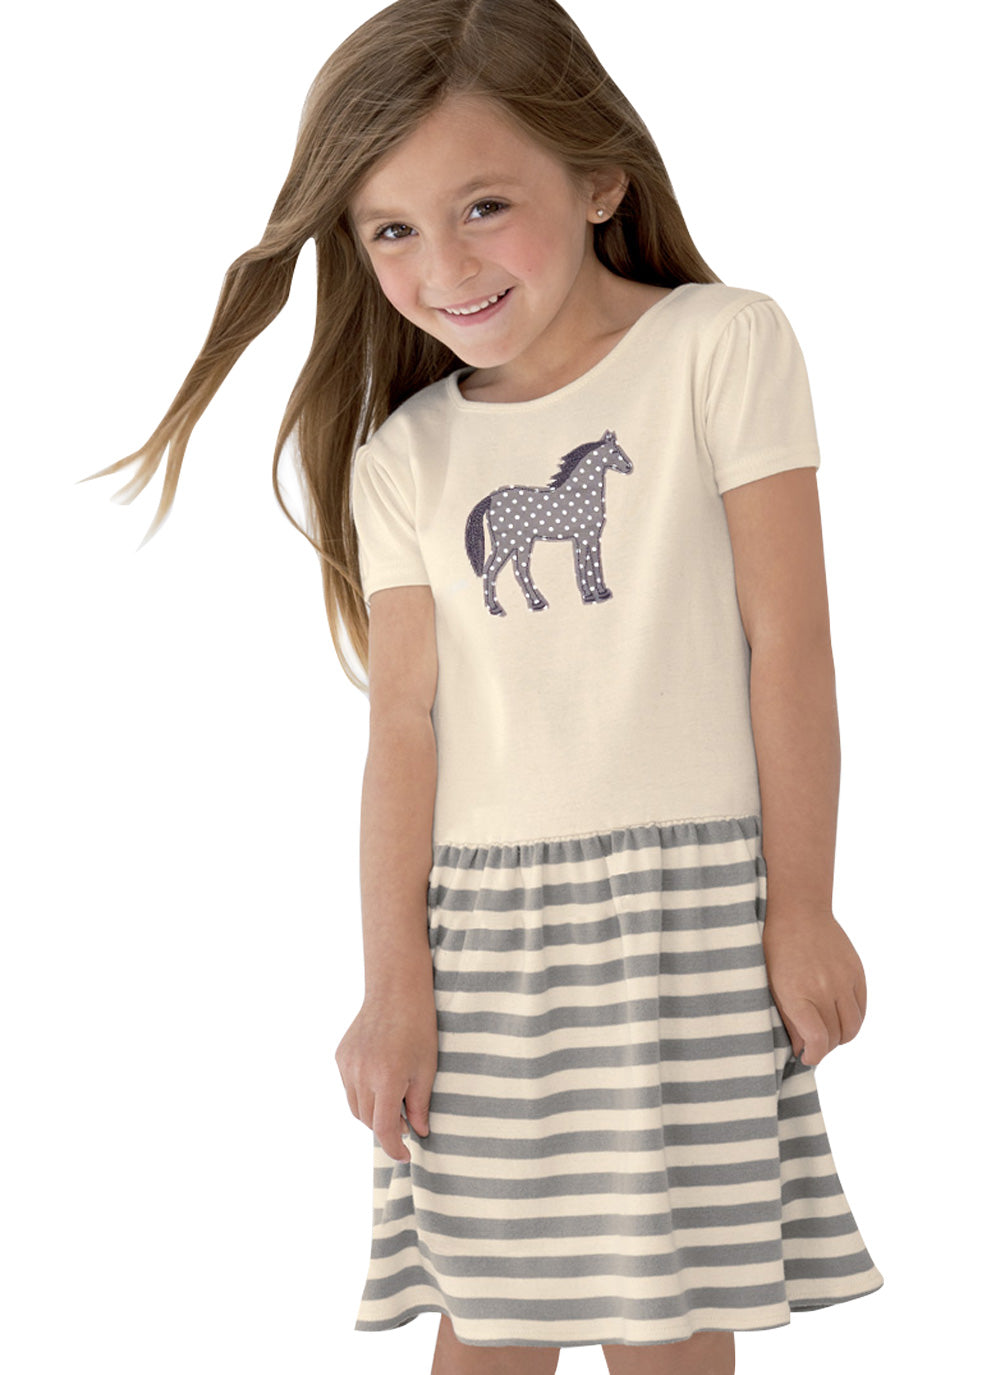 Pony (Appliqué) Toddler Dress T113